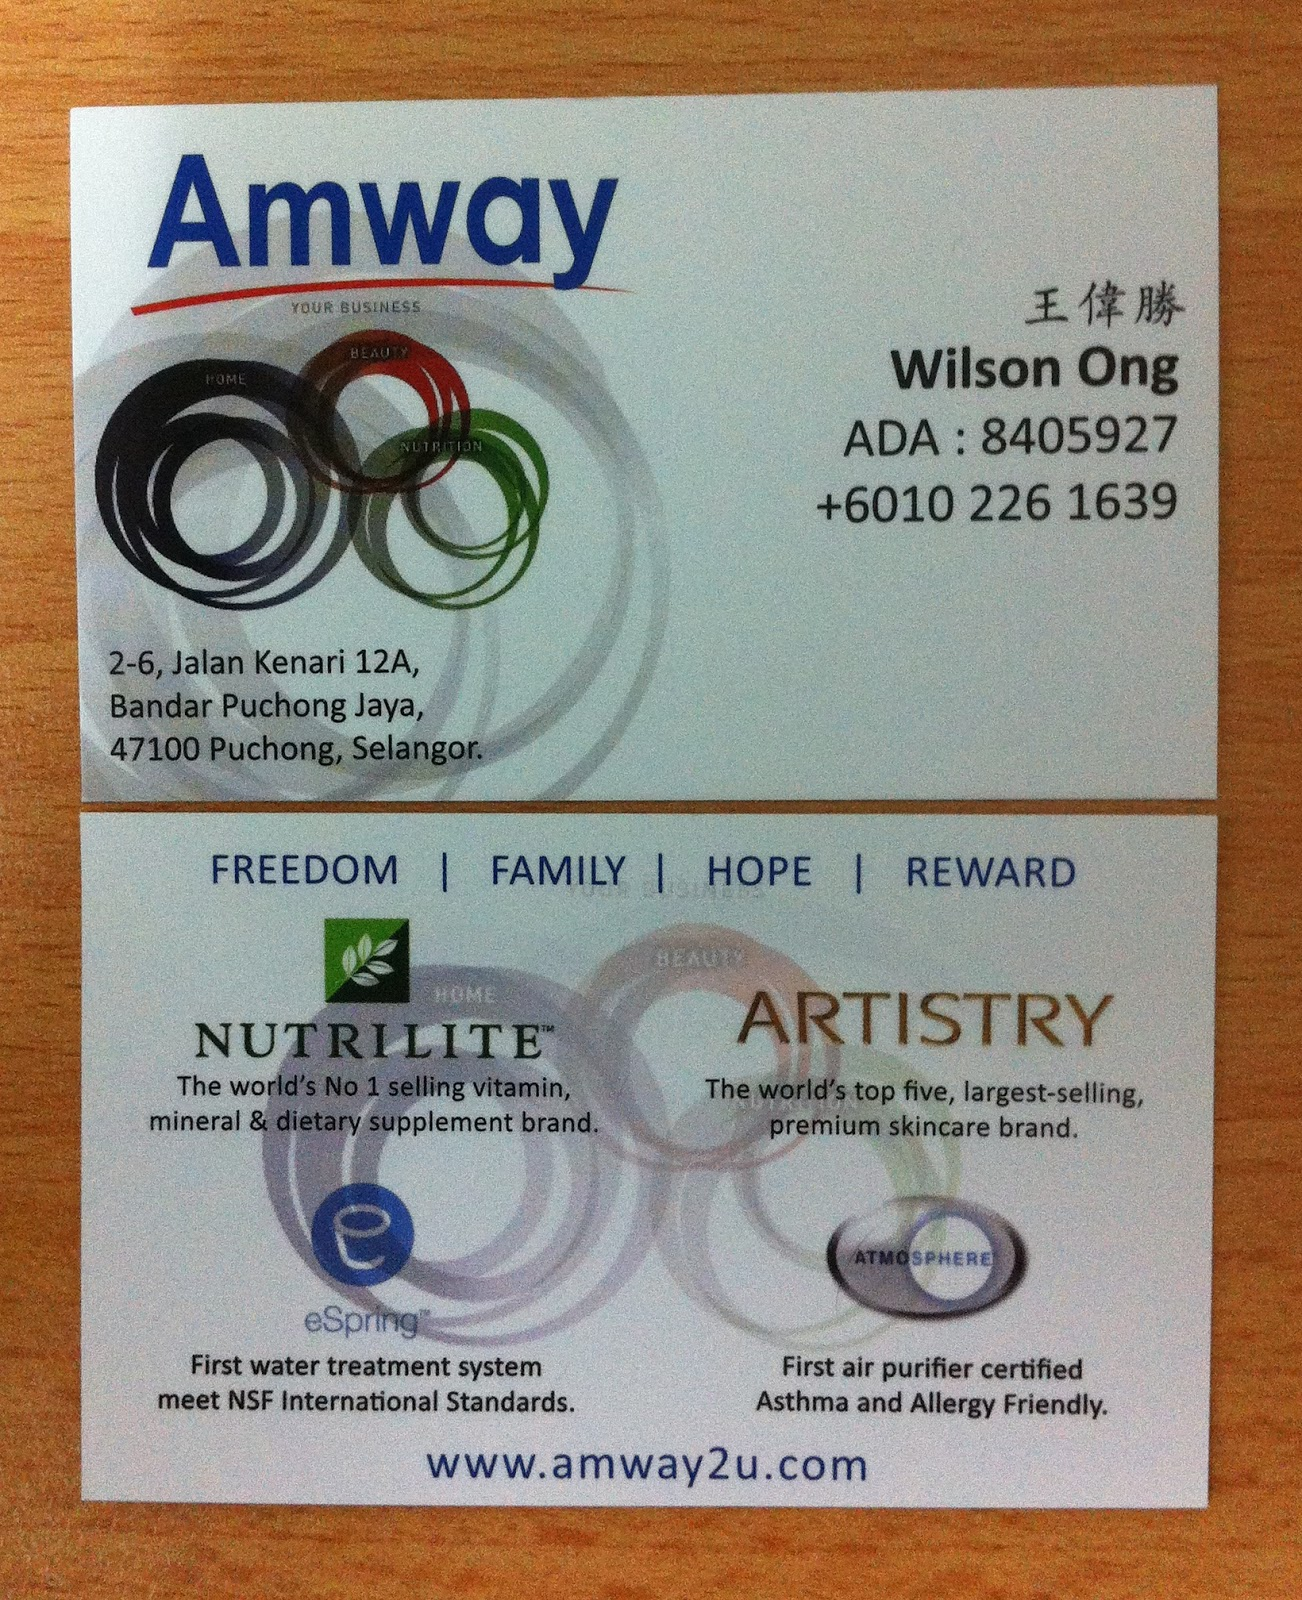 Amway Business Card Template Images - Business Cards Ideas